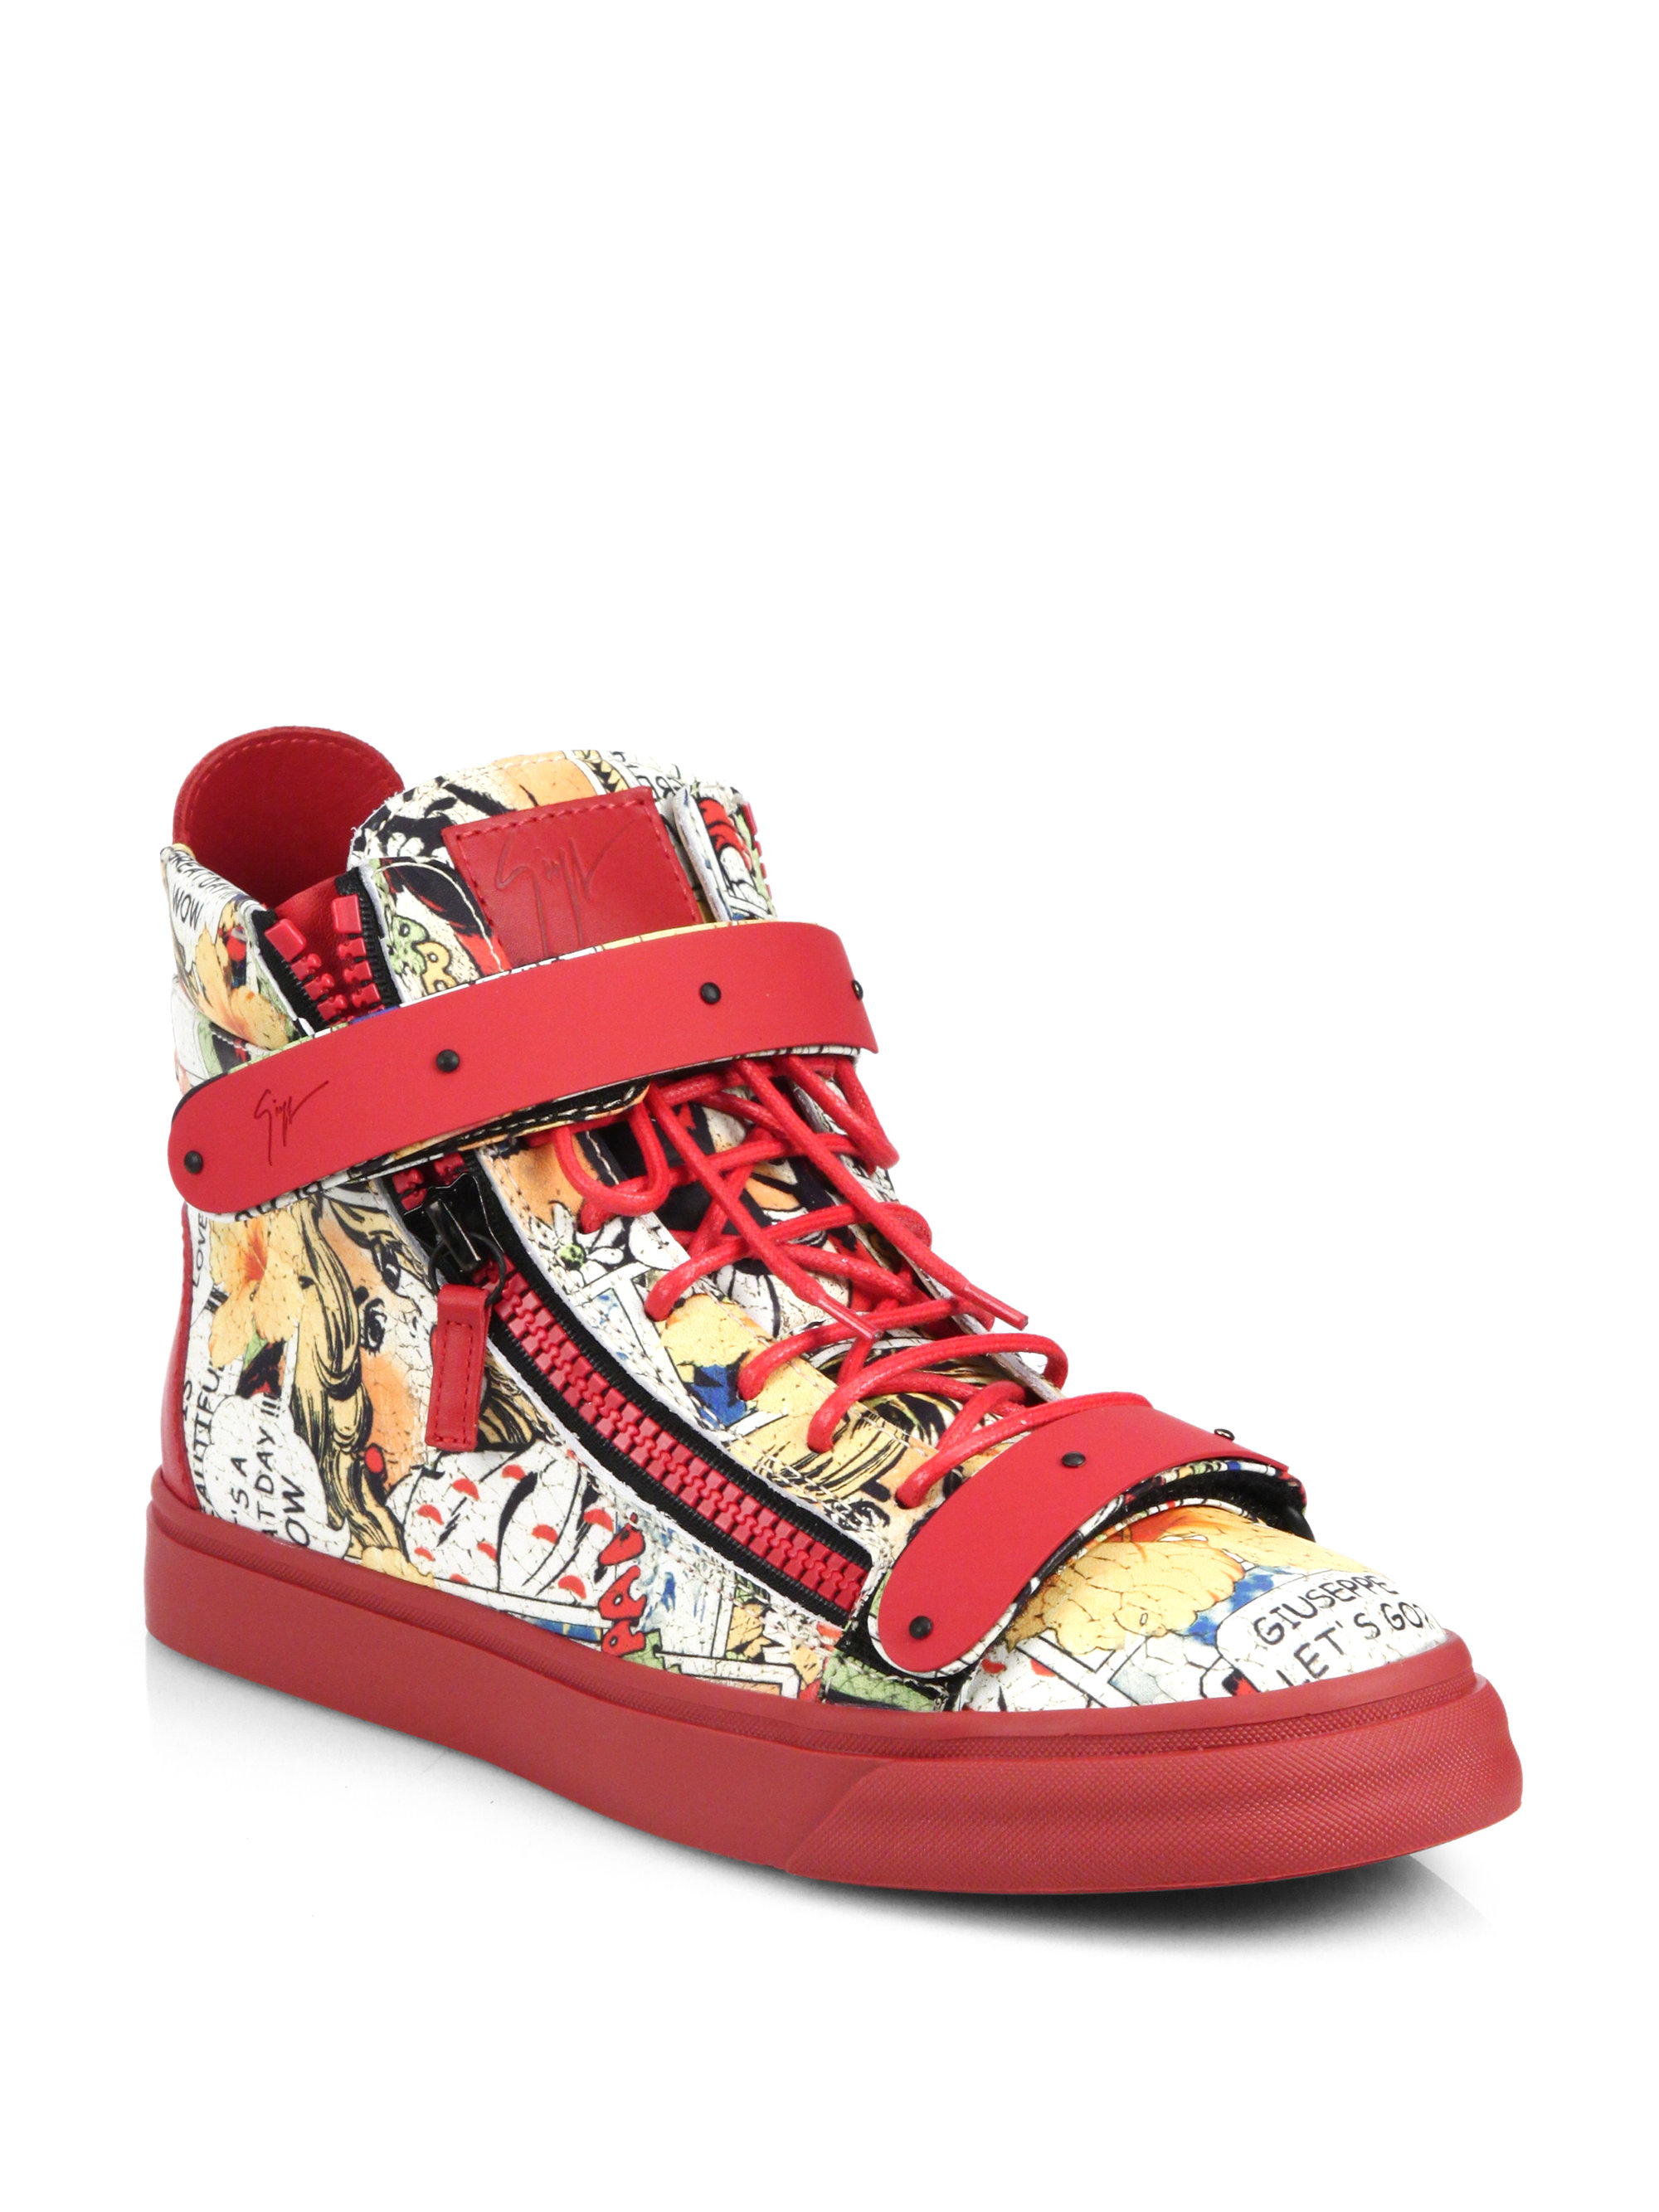 giuseppe zanotti mens comic strip high top sneaker in red. Black Bedroom Furniture Sets. Home Design Ideas